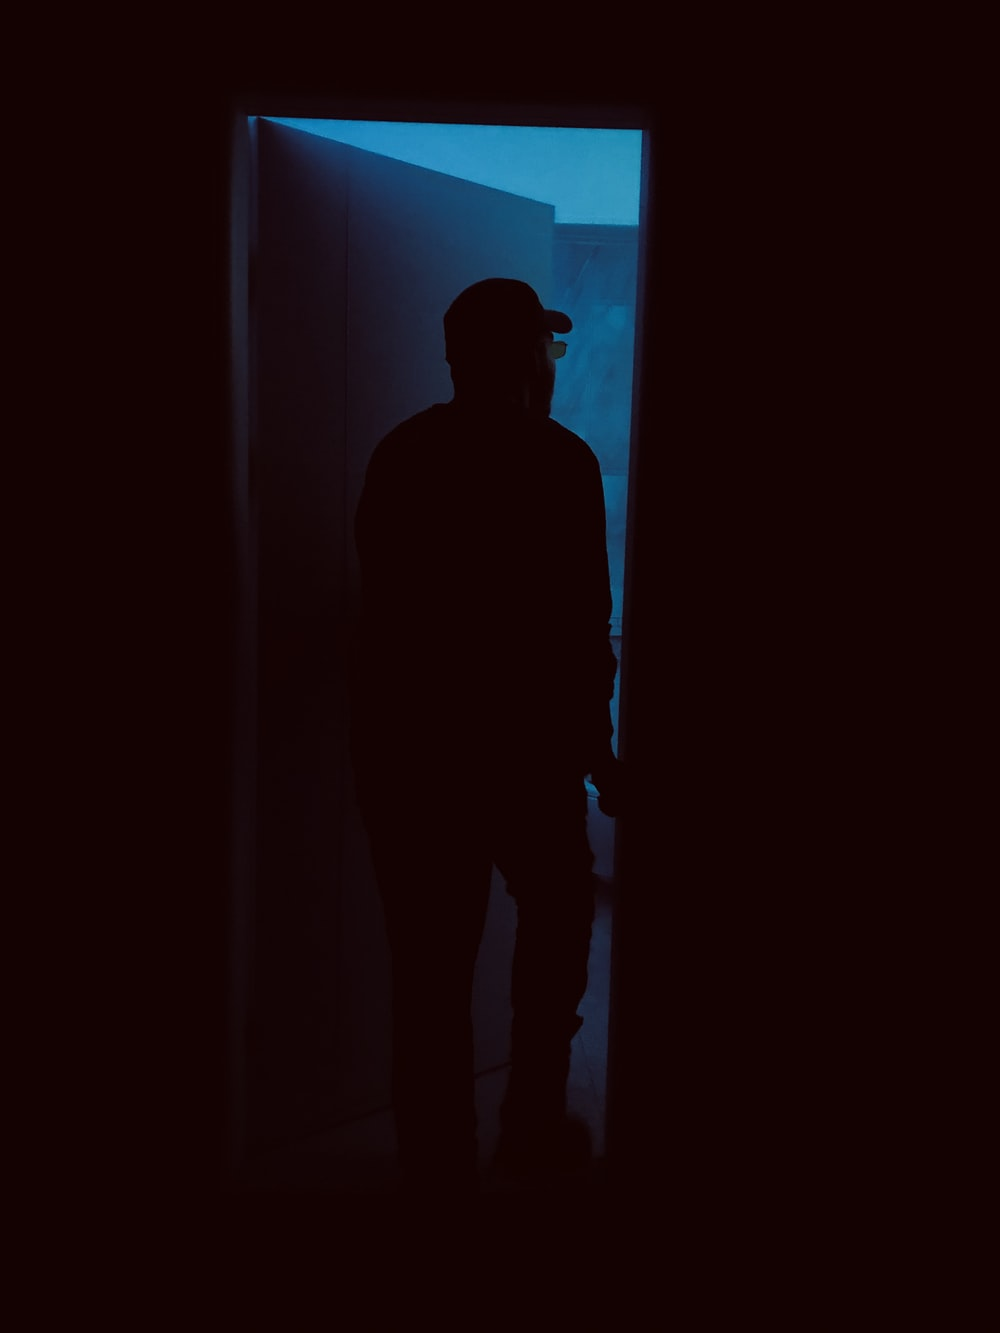 silhouette of person entering door